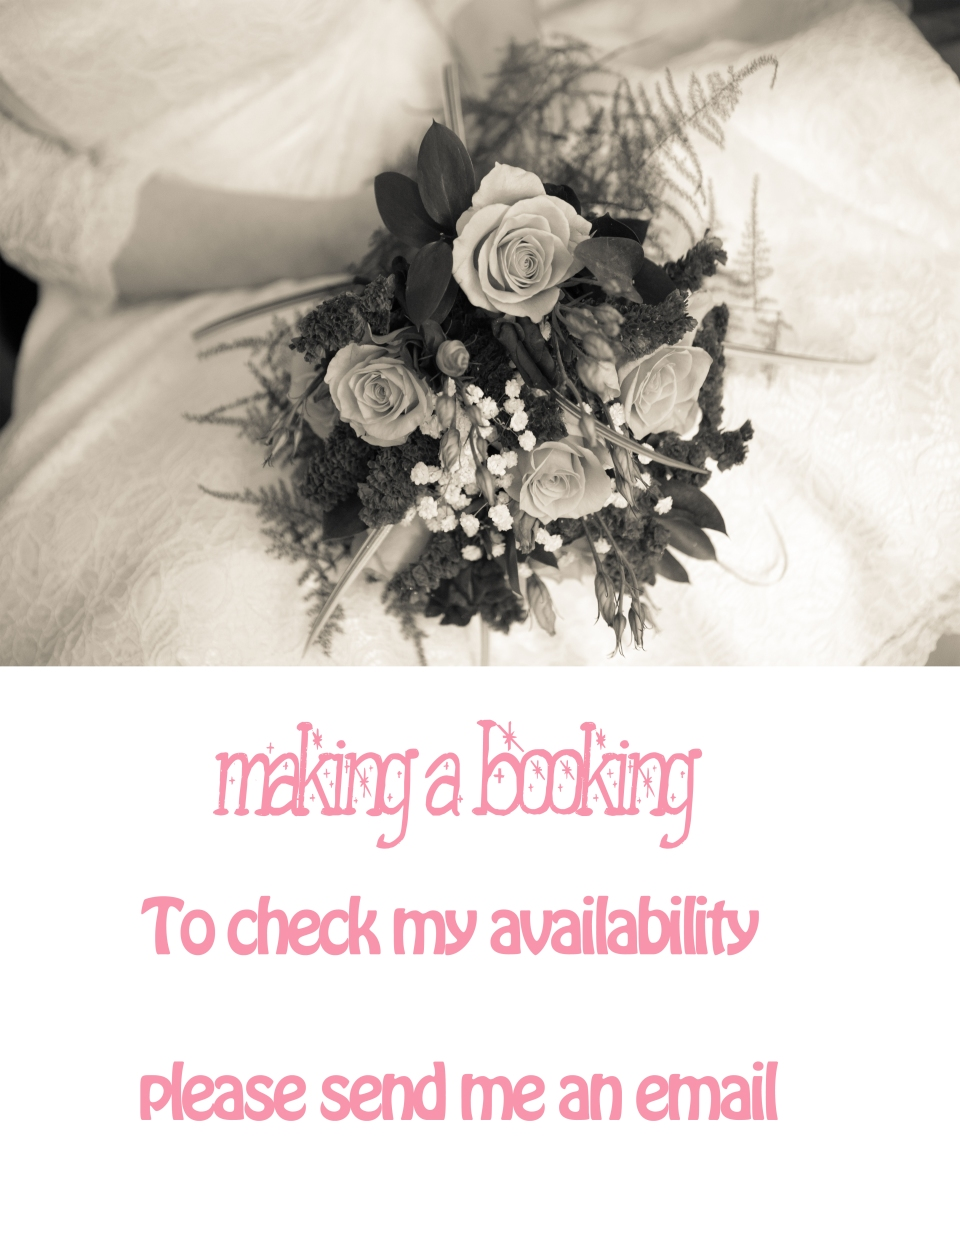 Wedding Booking